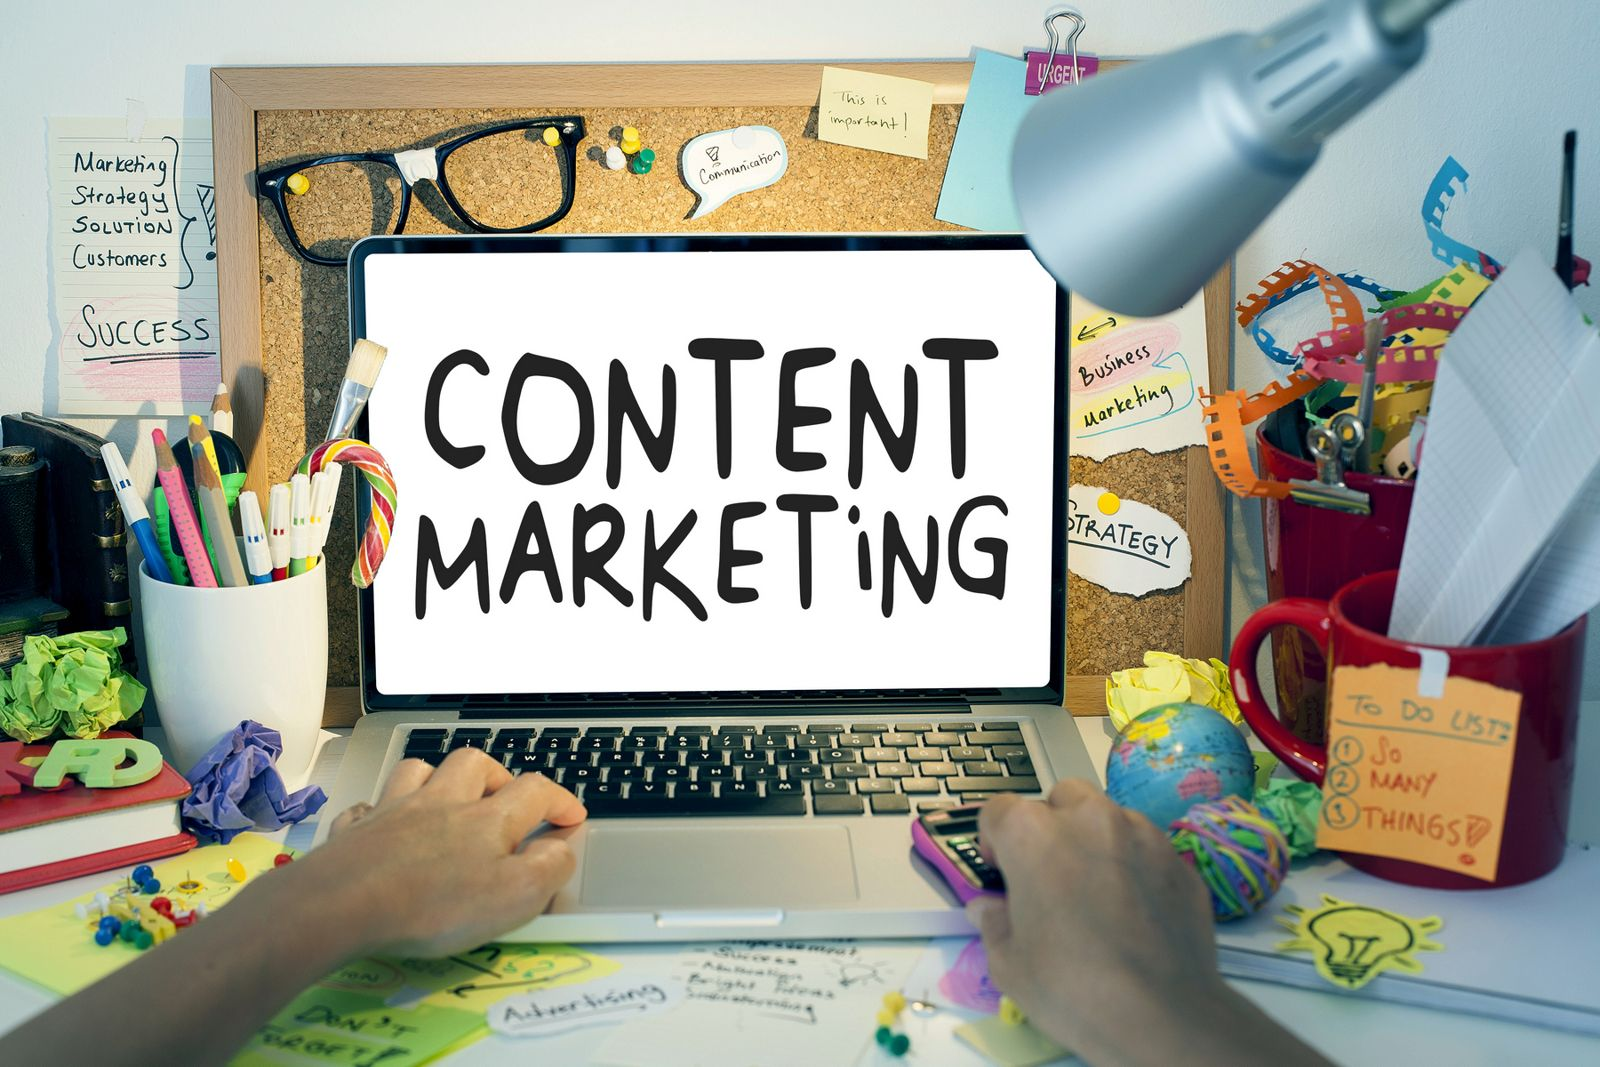 Content marketing business success